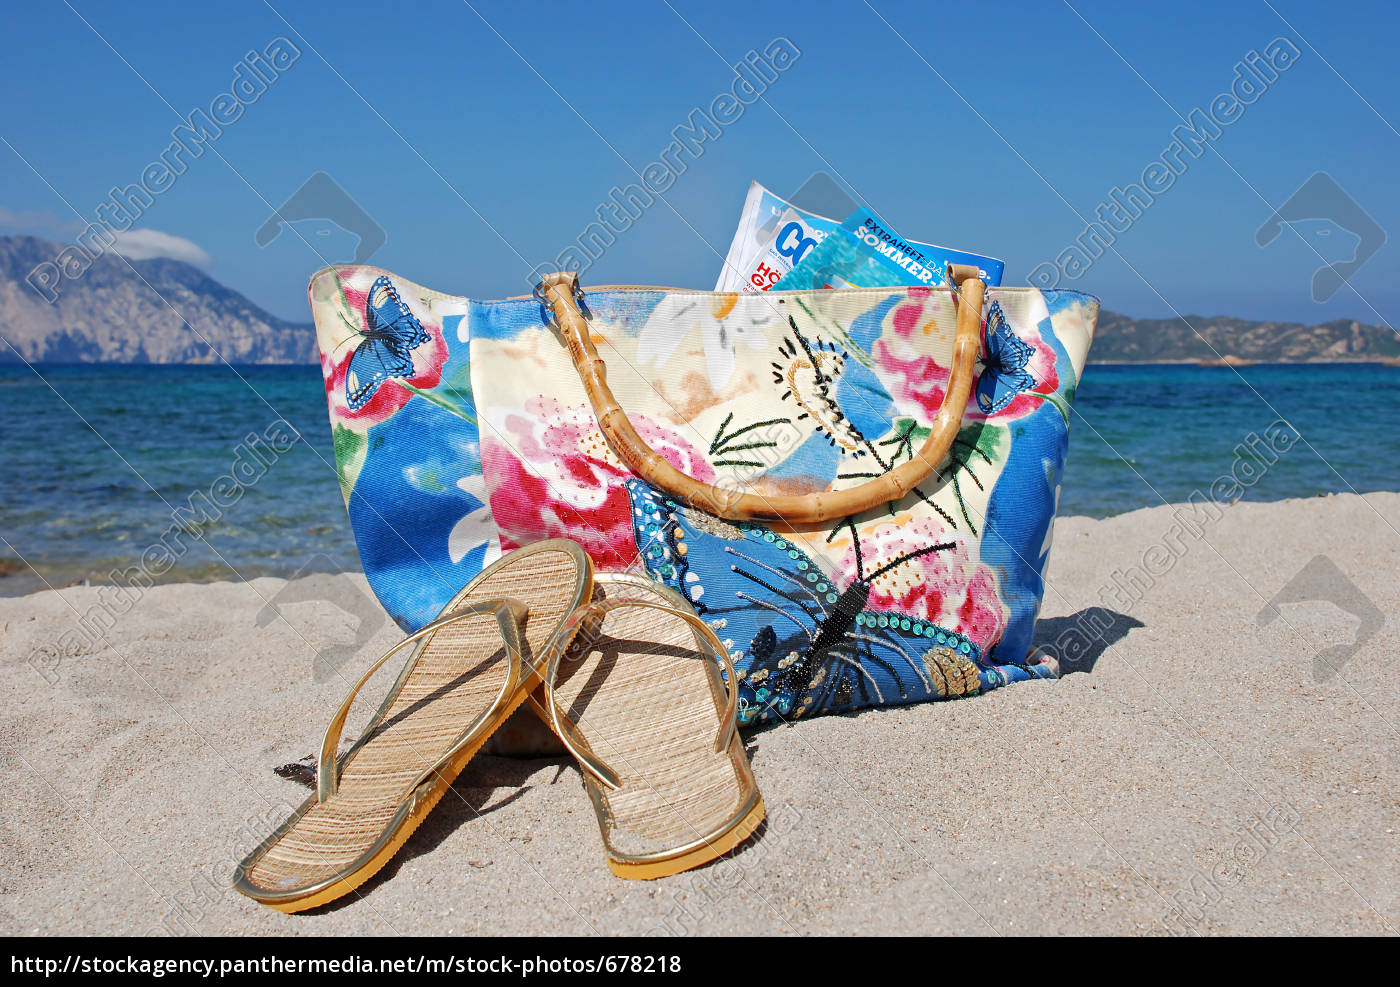 beachbag - 678218